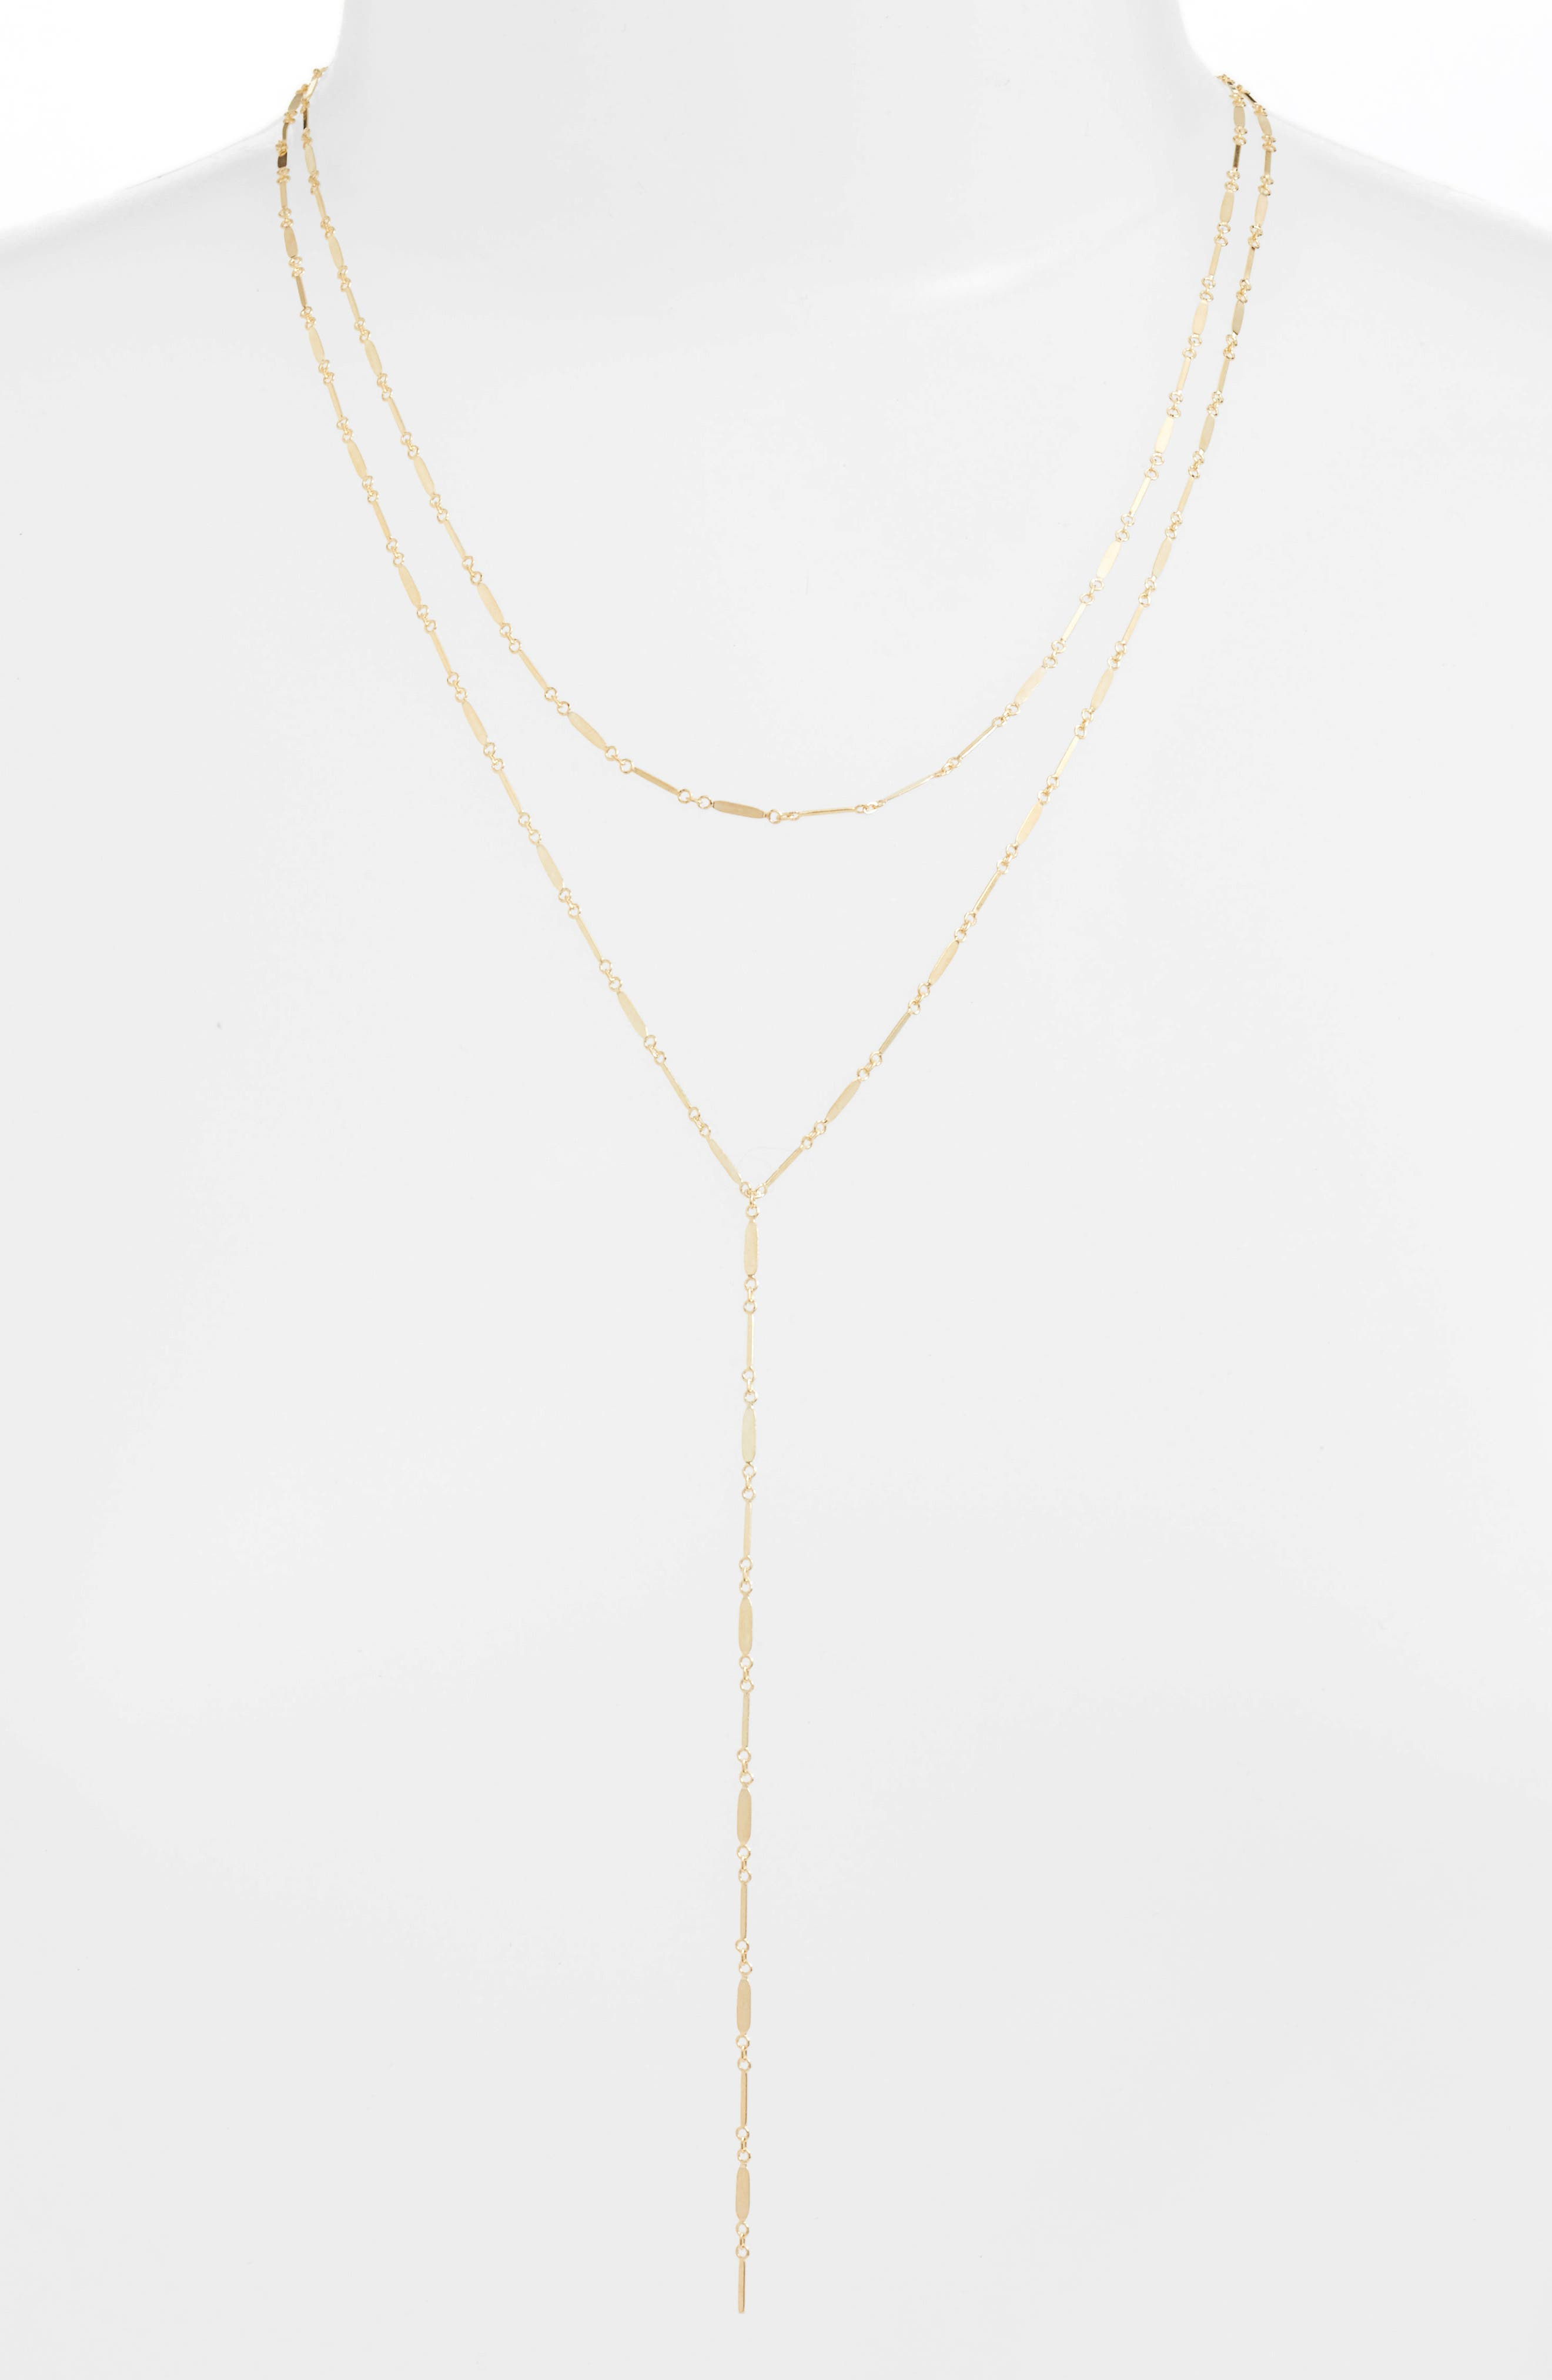 Mirror Bar Multistrand Lariat Necklace,                         Main,                         color, Gold